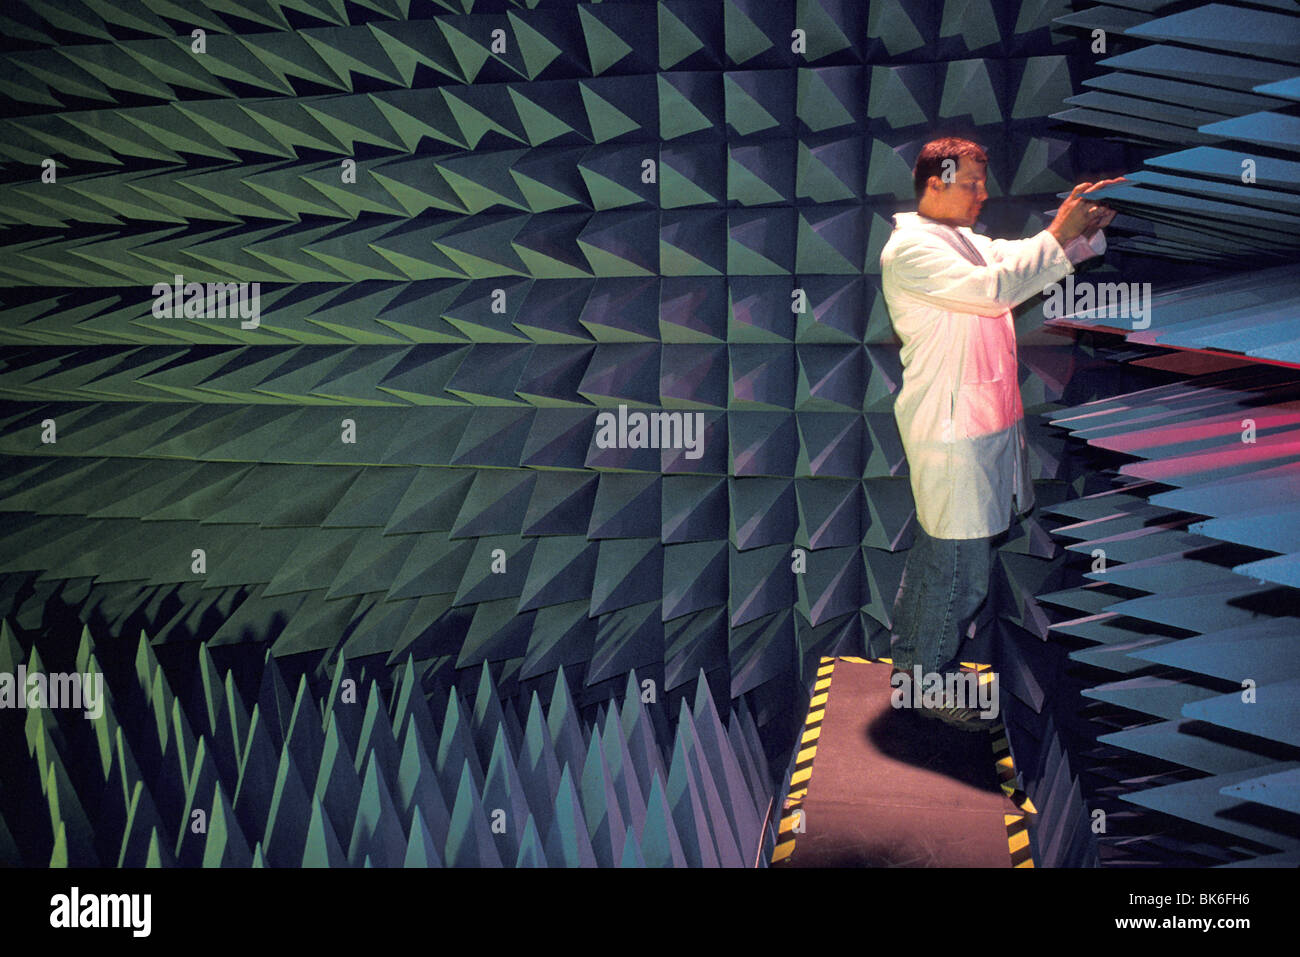 released scientist in anechoic (acoustic) chamber National Institute of Standards and Technology - Stock Image